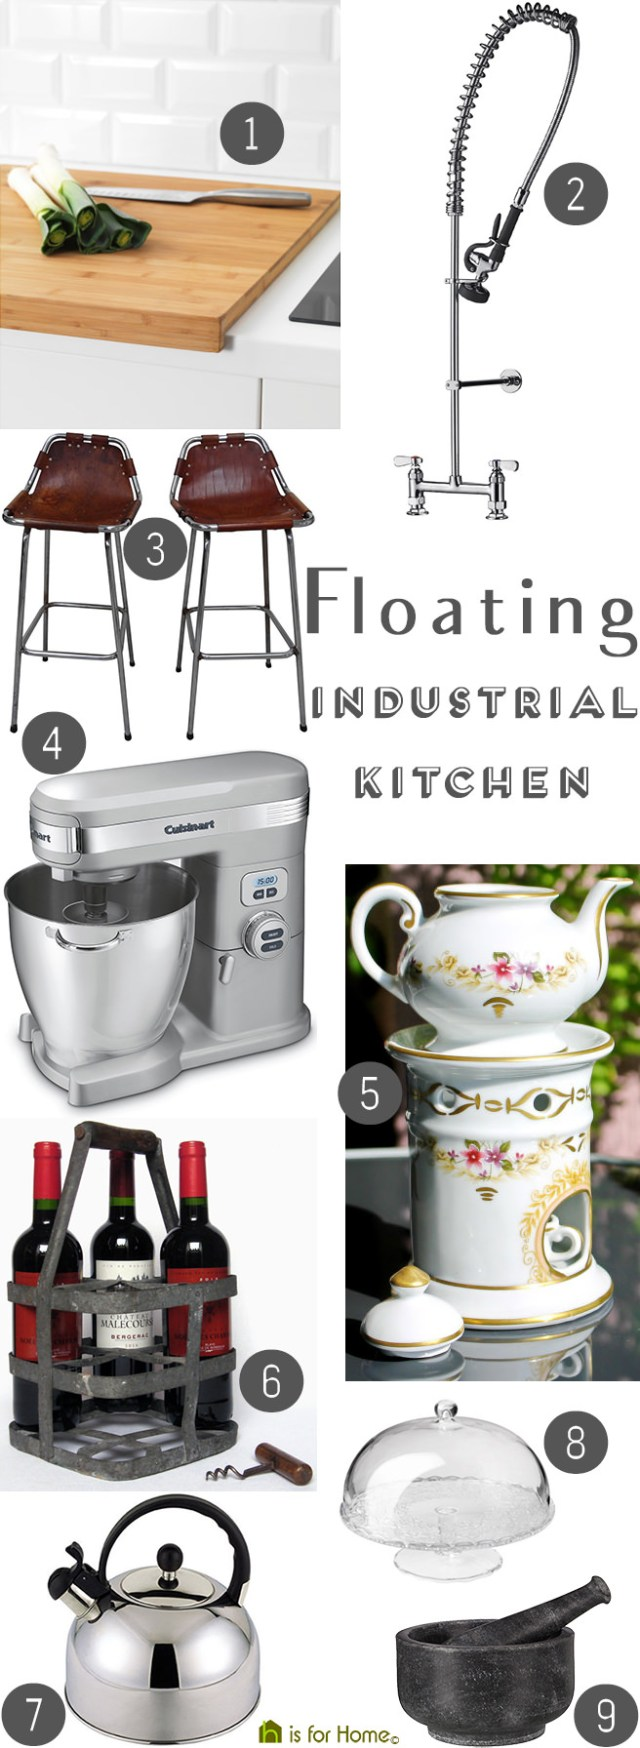 Get the look: Floating industrial kitchen | H is for Home